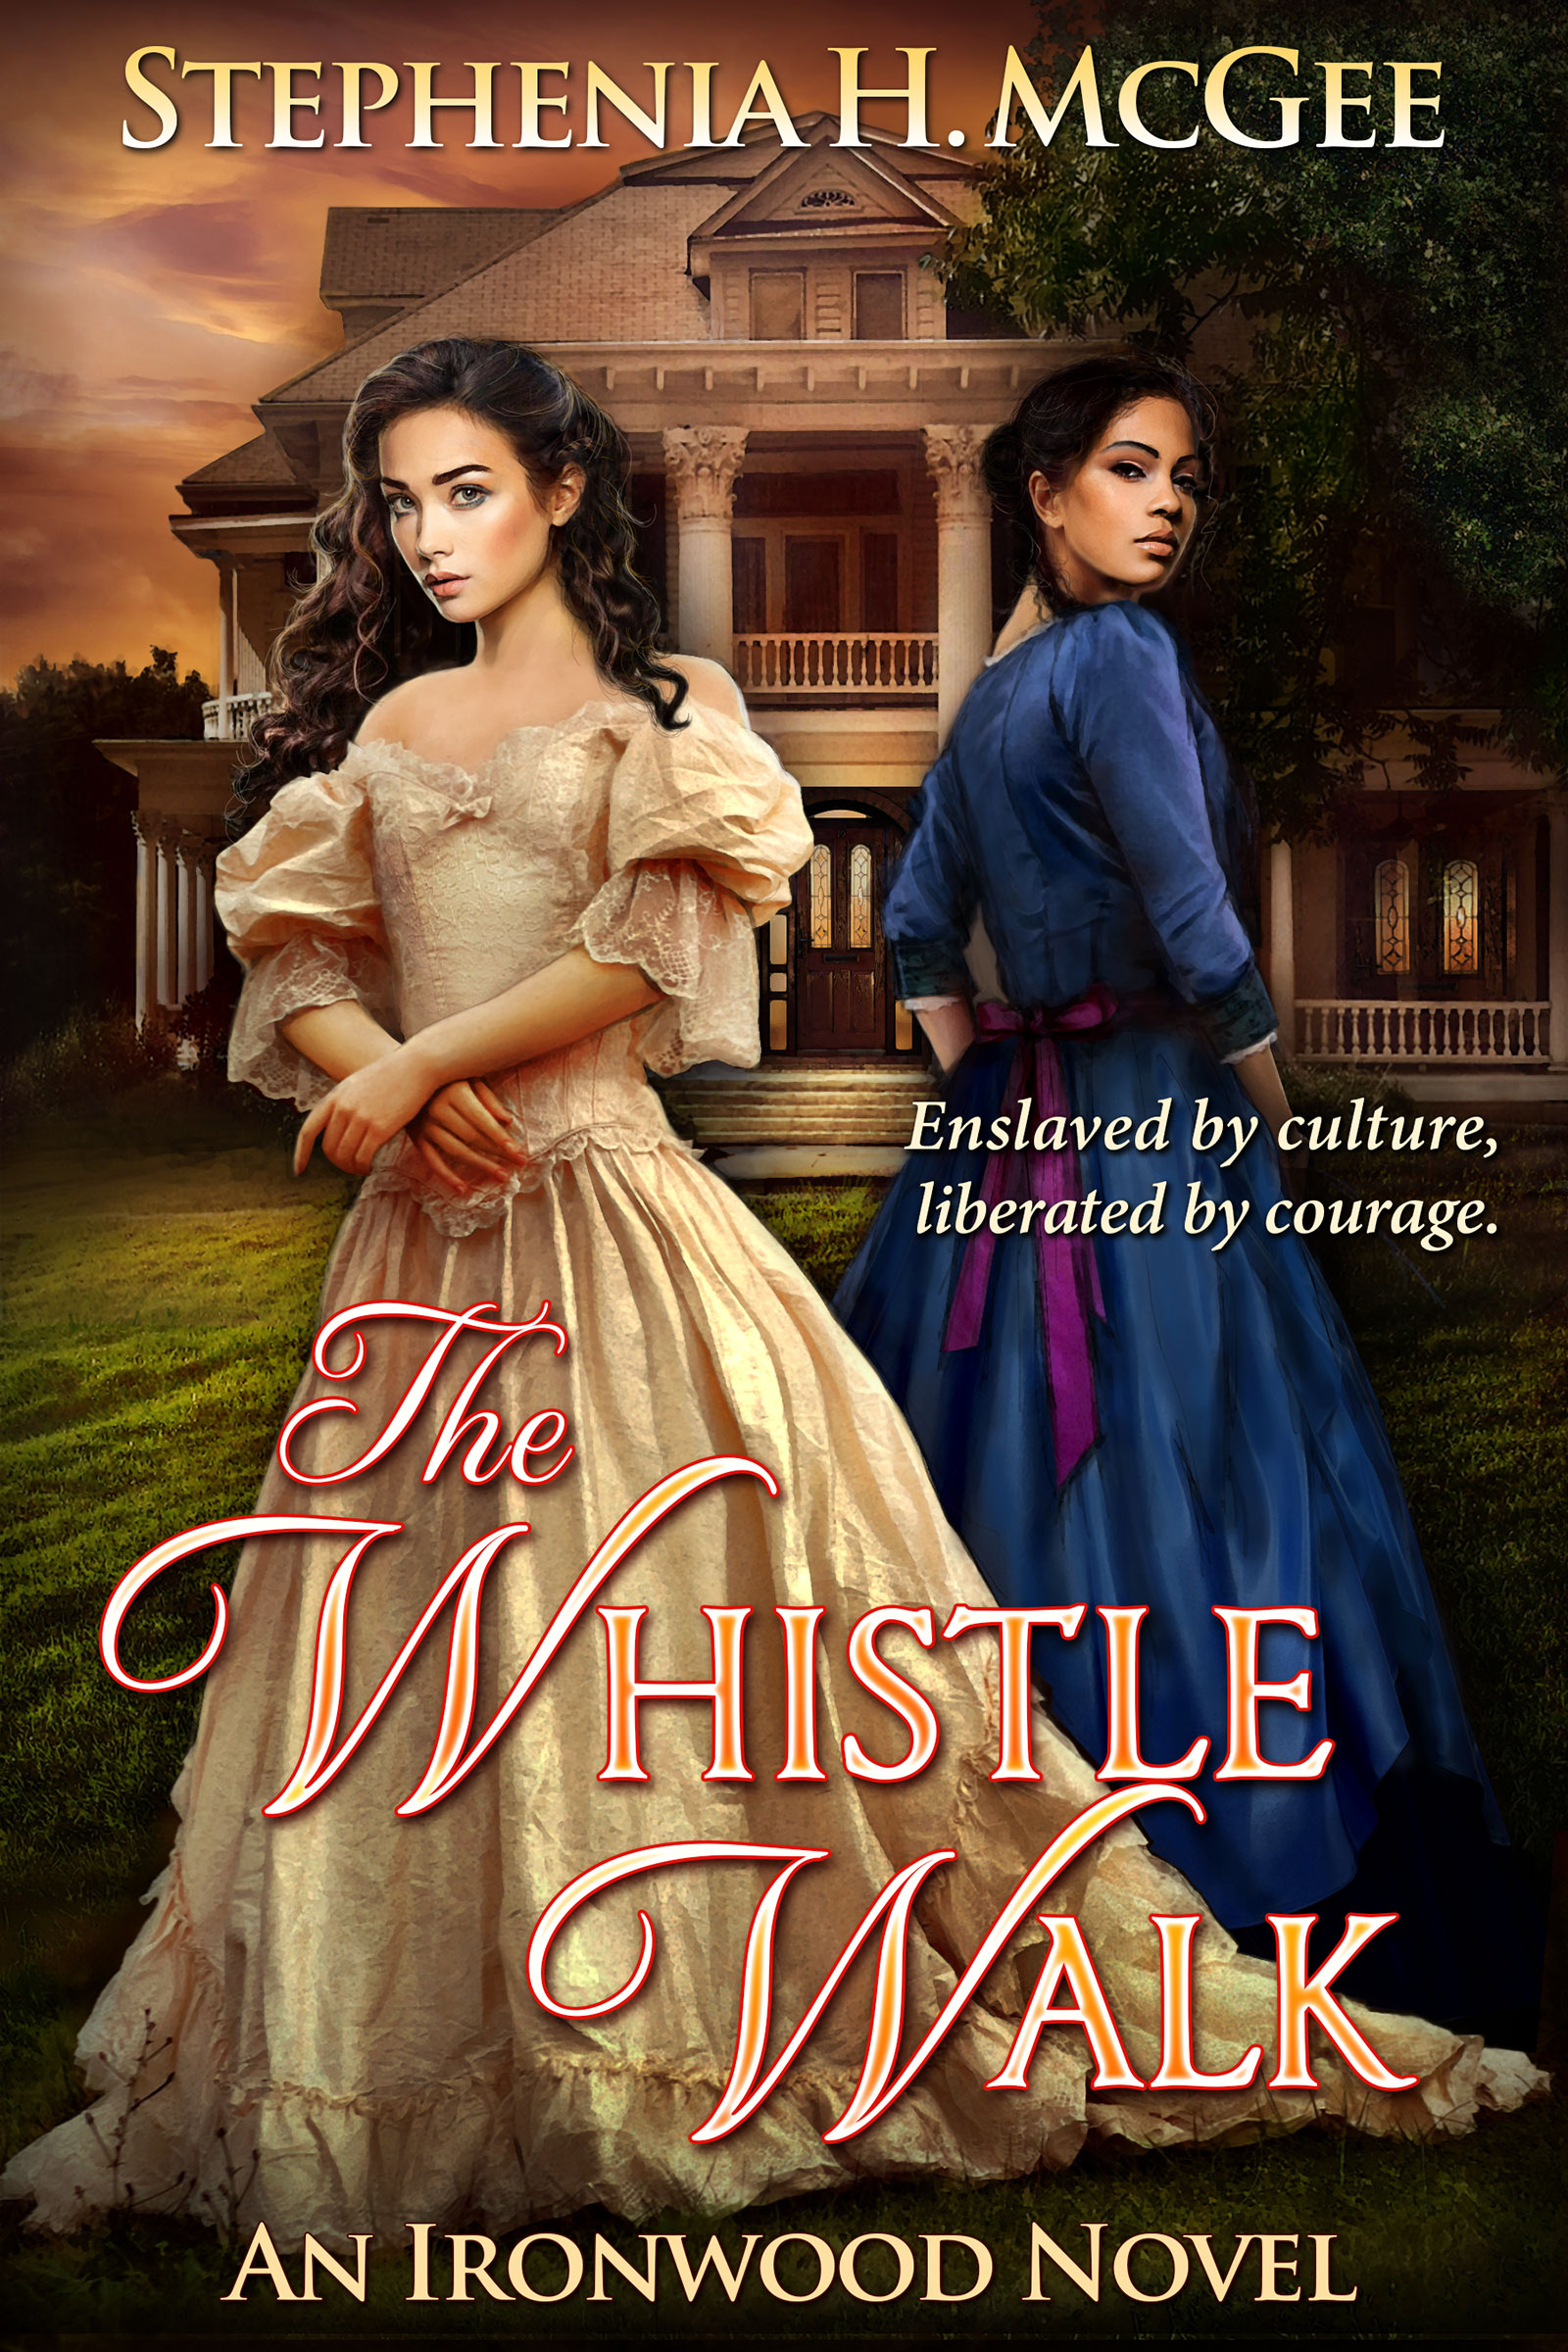 The Whistle Walk - Stephenia H. McGee